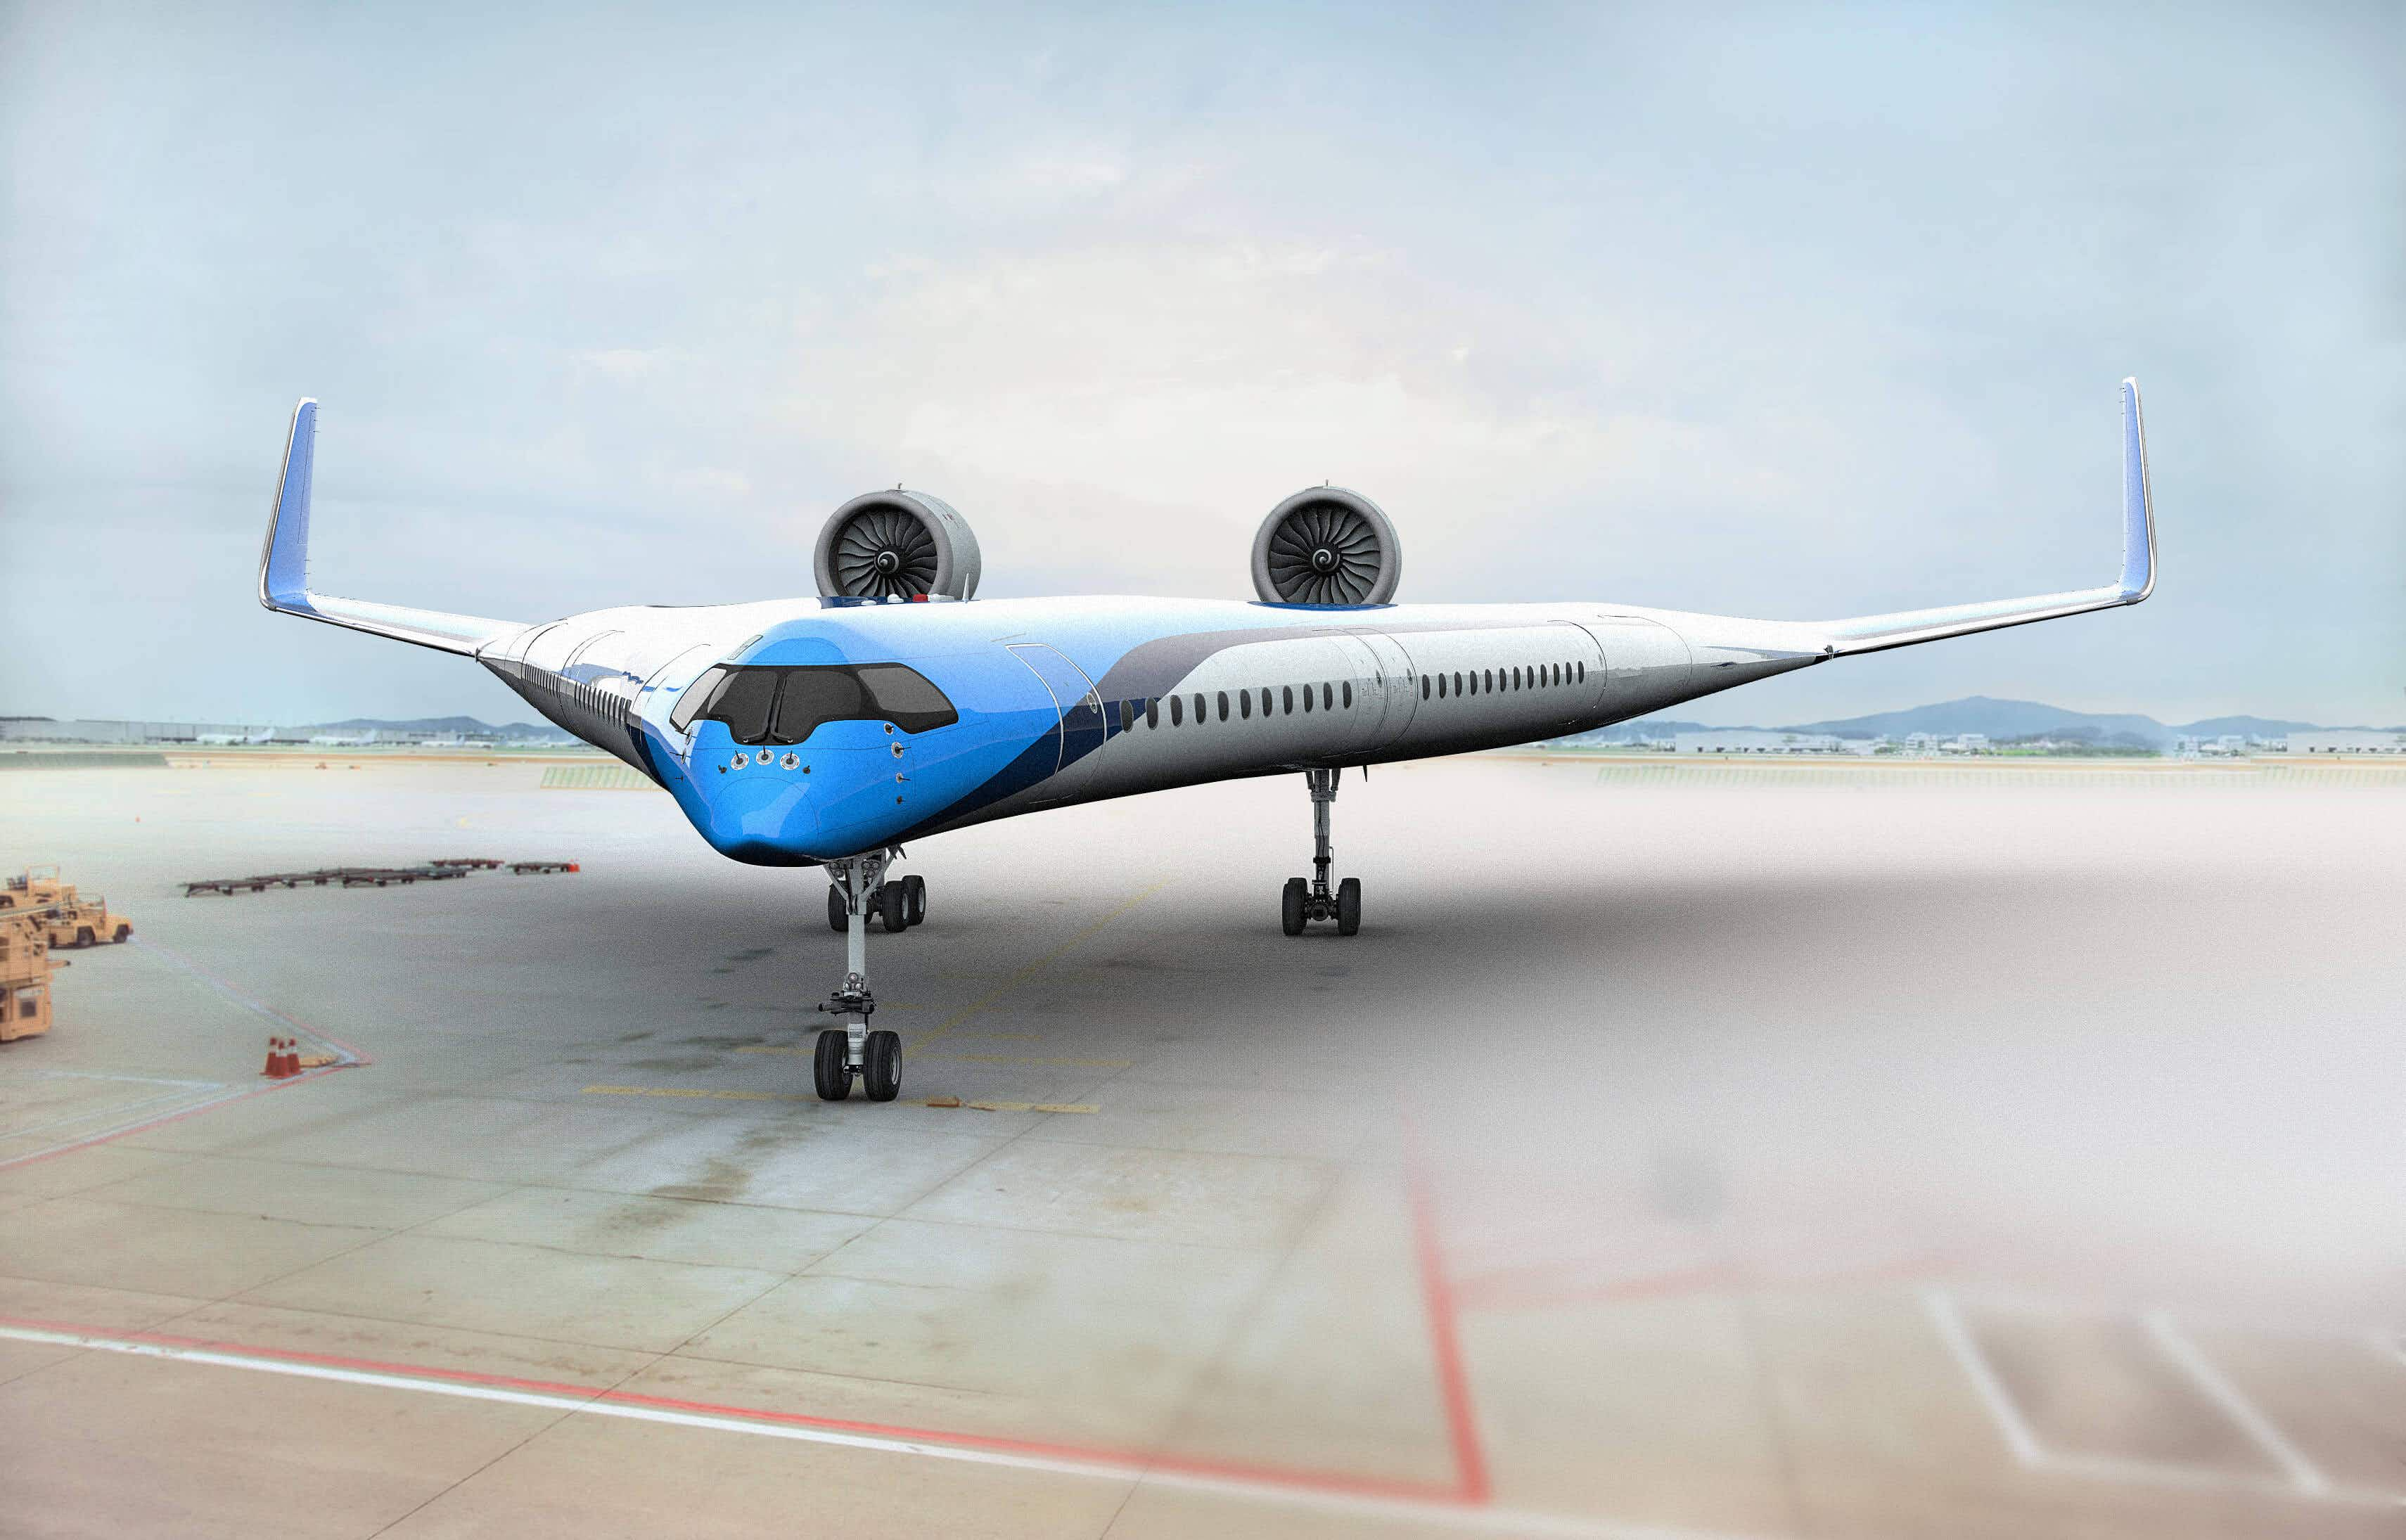 KLM reveals details of plans for a new v-shaped aircraft